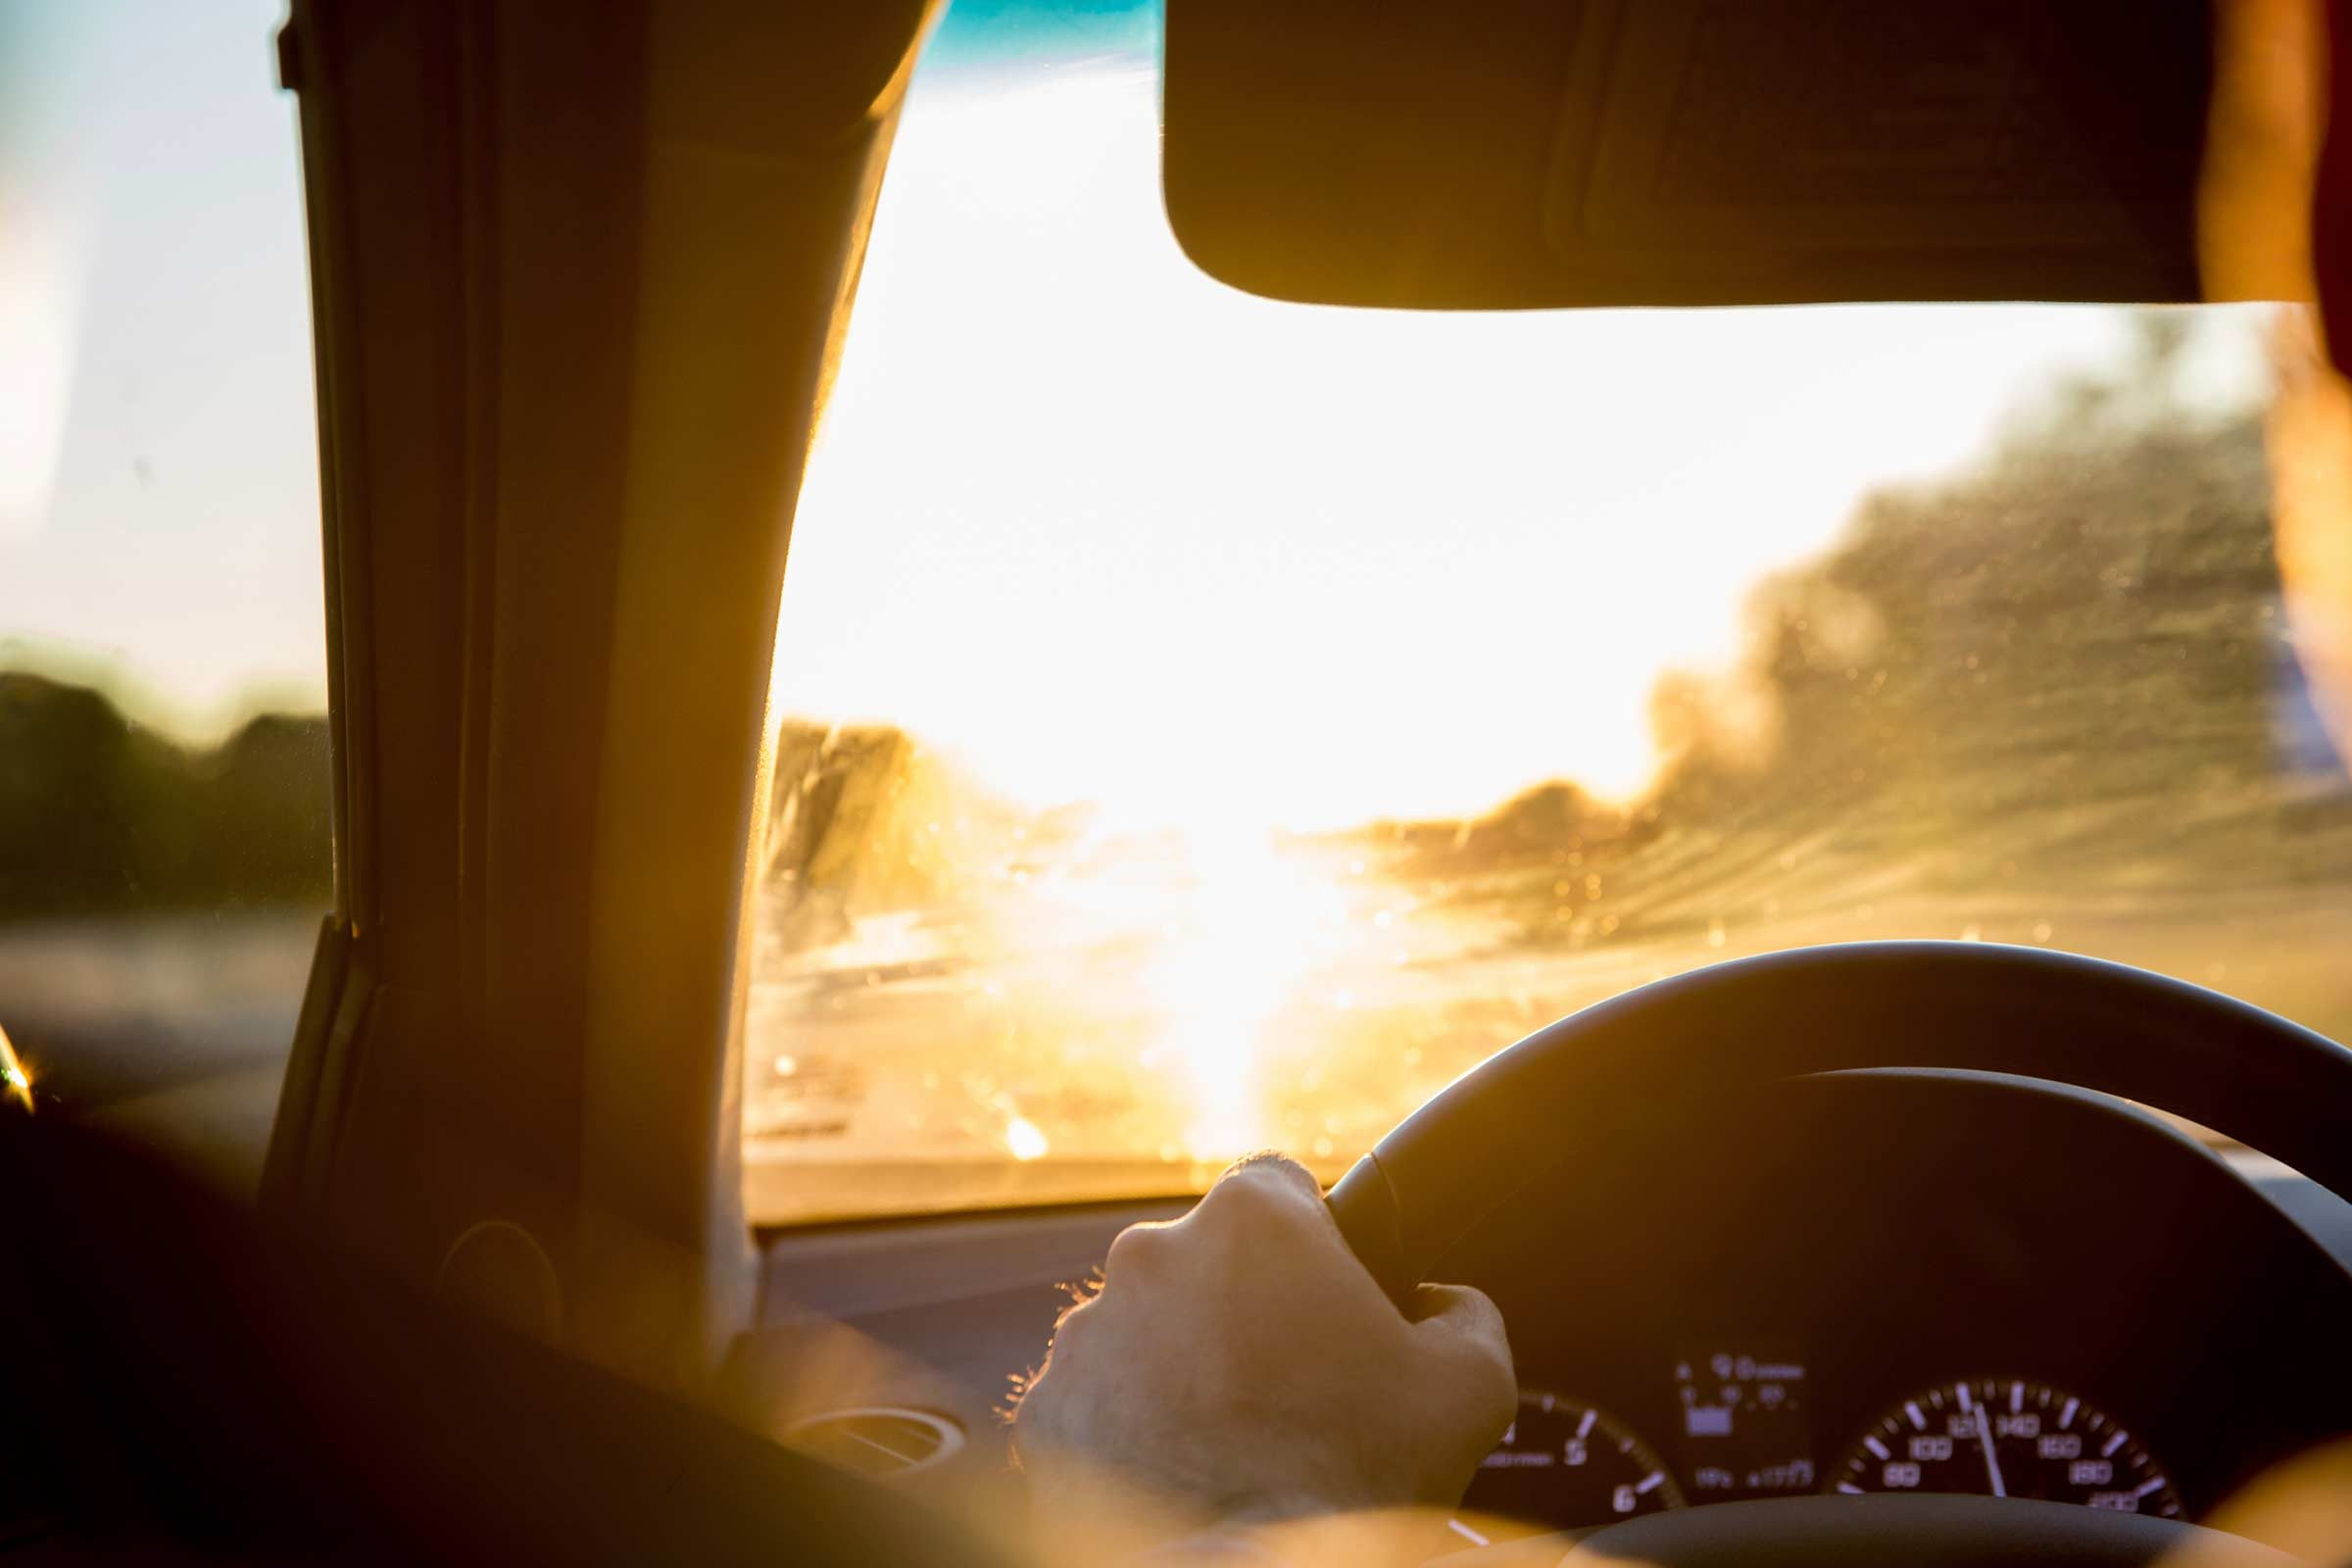 Watch for sun damage when you're behind the wheel.